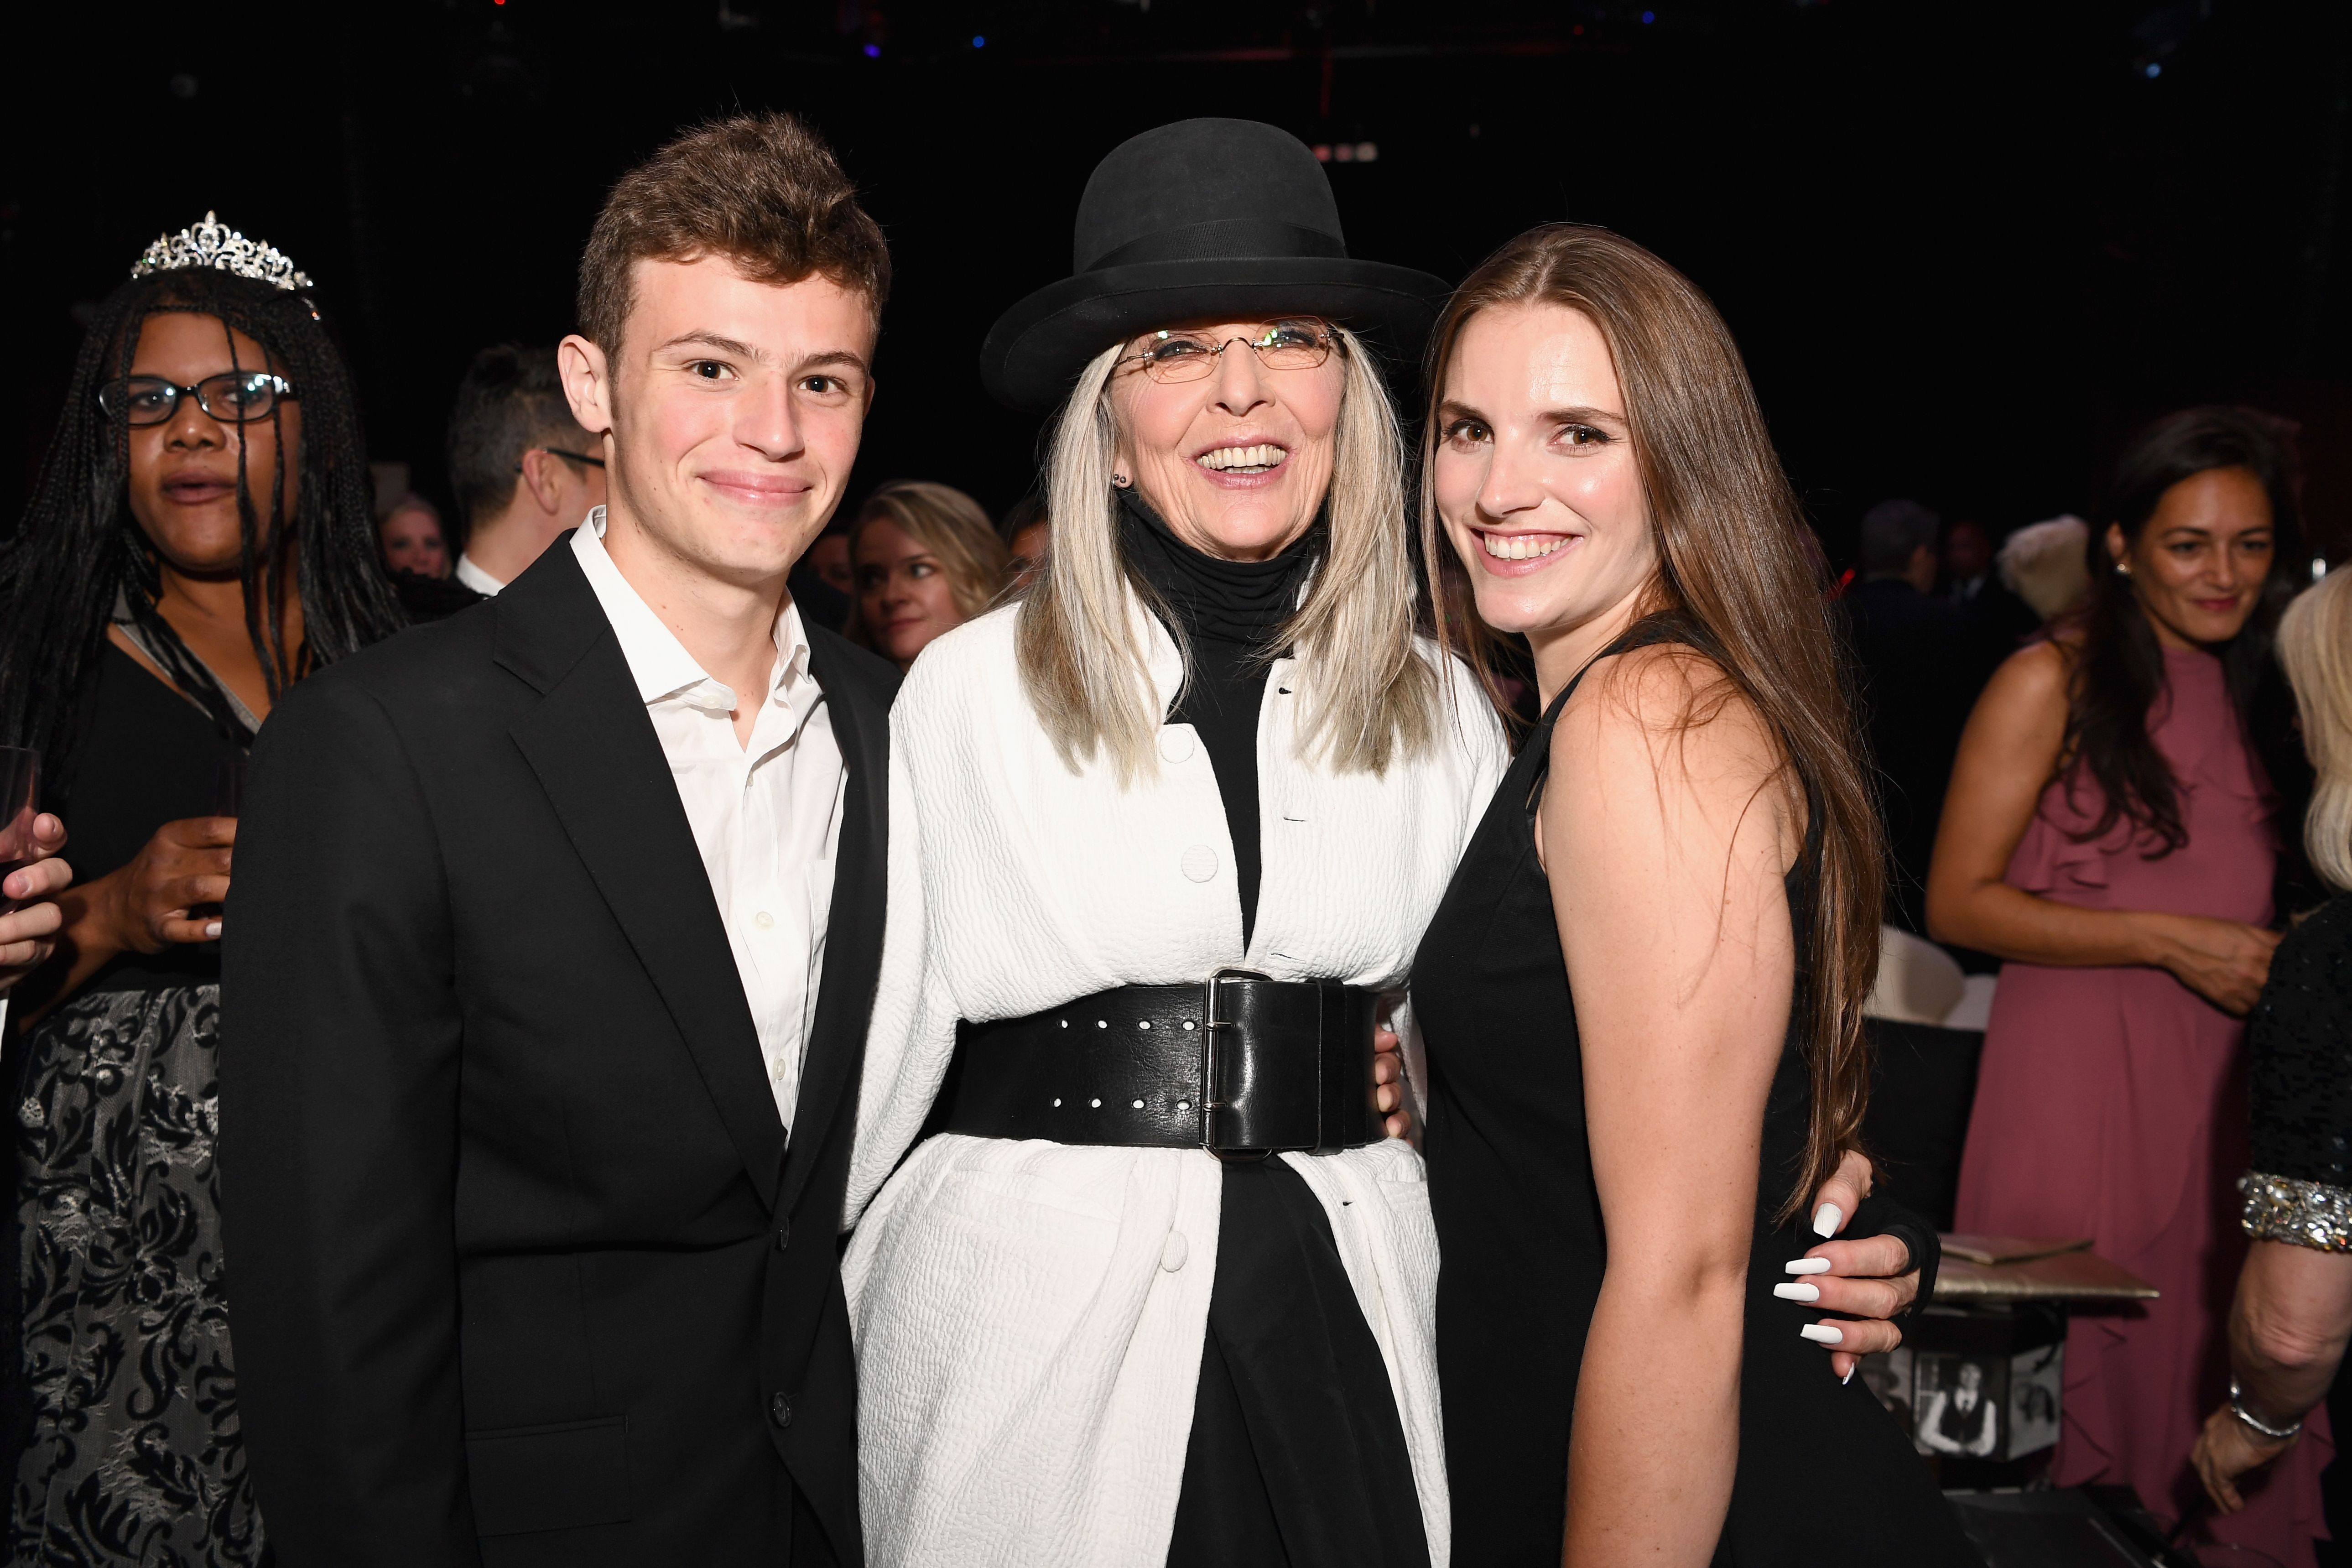 Diane Keaton with daughter Dexter and son Duke at the after party for American Film Institute's 45th Life Achievement Award Gala Tribute to Diane Keaton in 2017 in Hollywood | Source: Getty Images